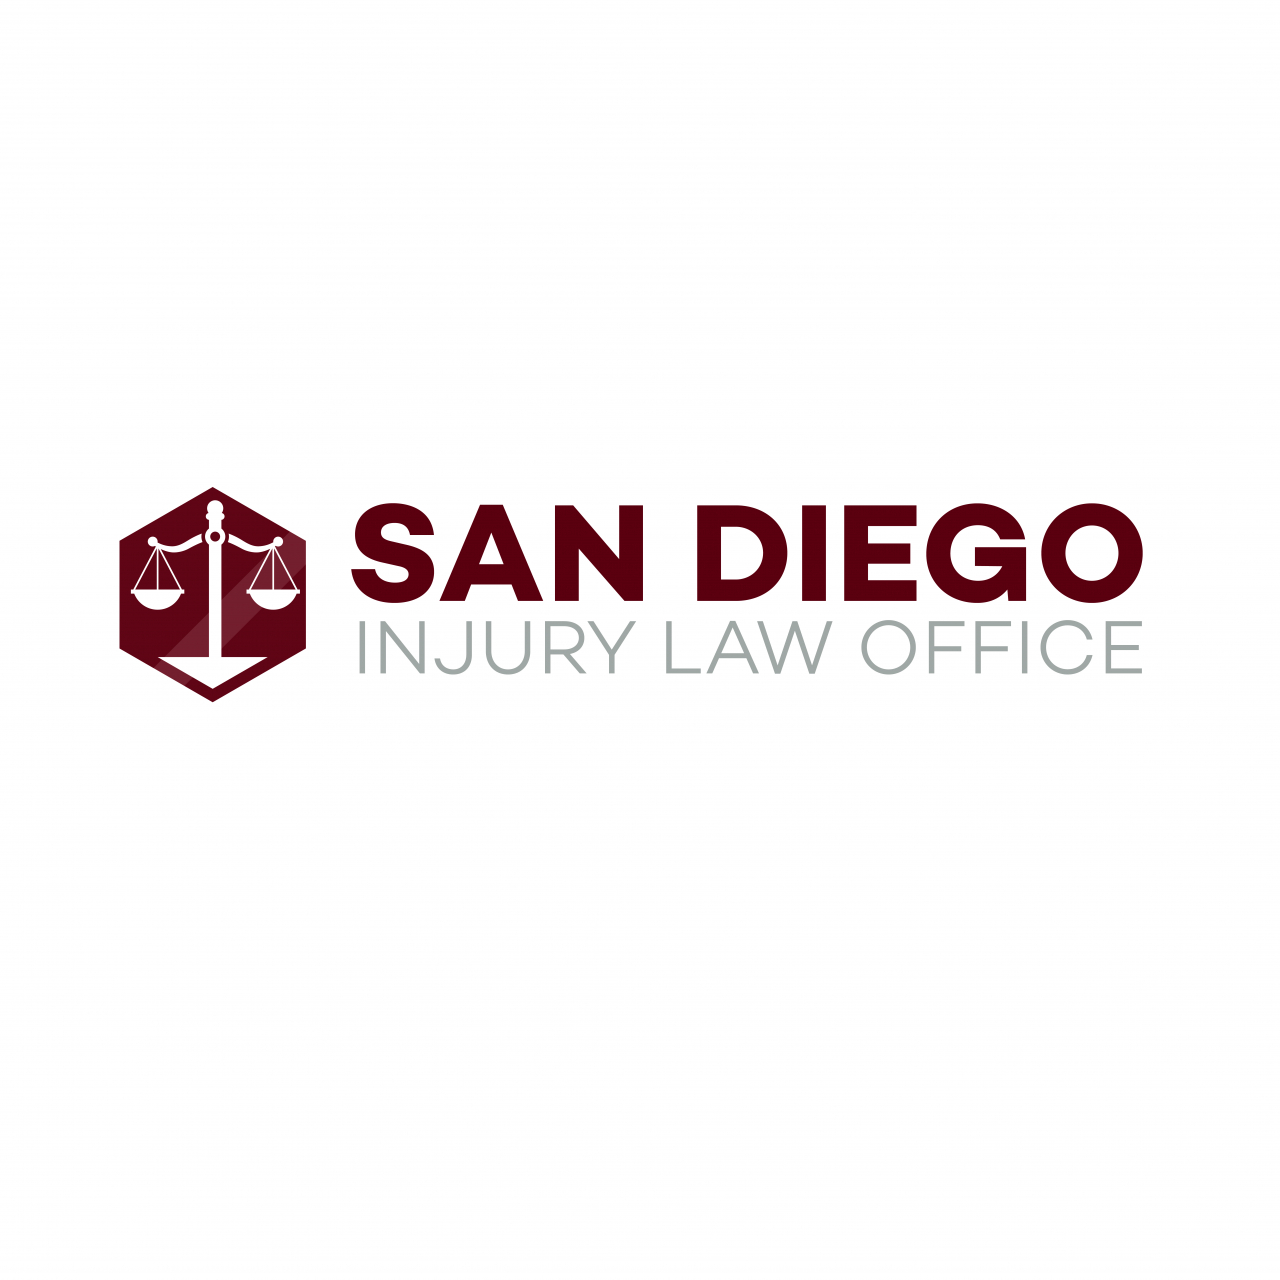 San Diego Injury Law Office Profile Picture